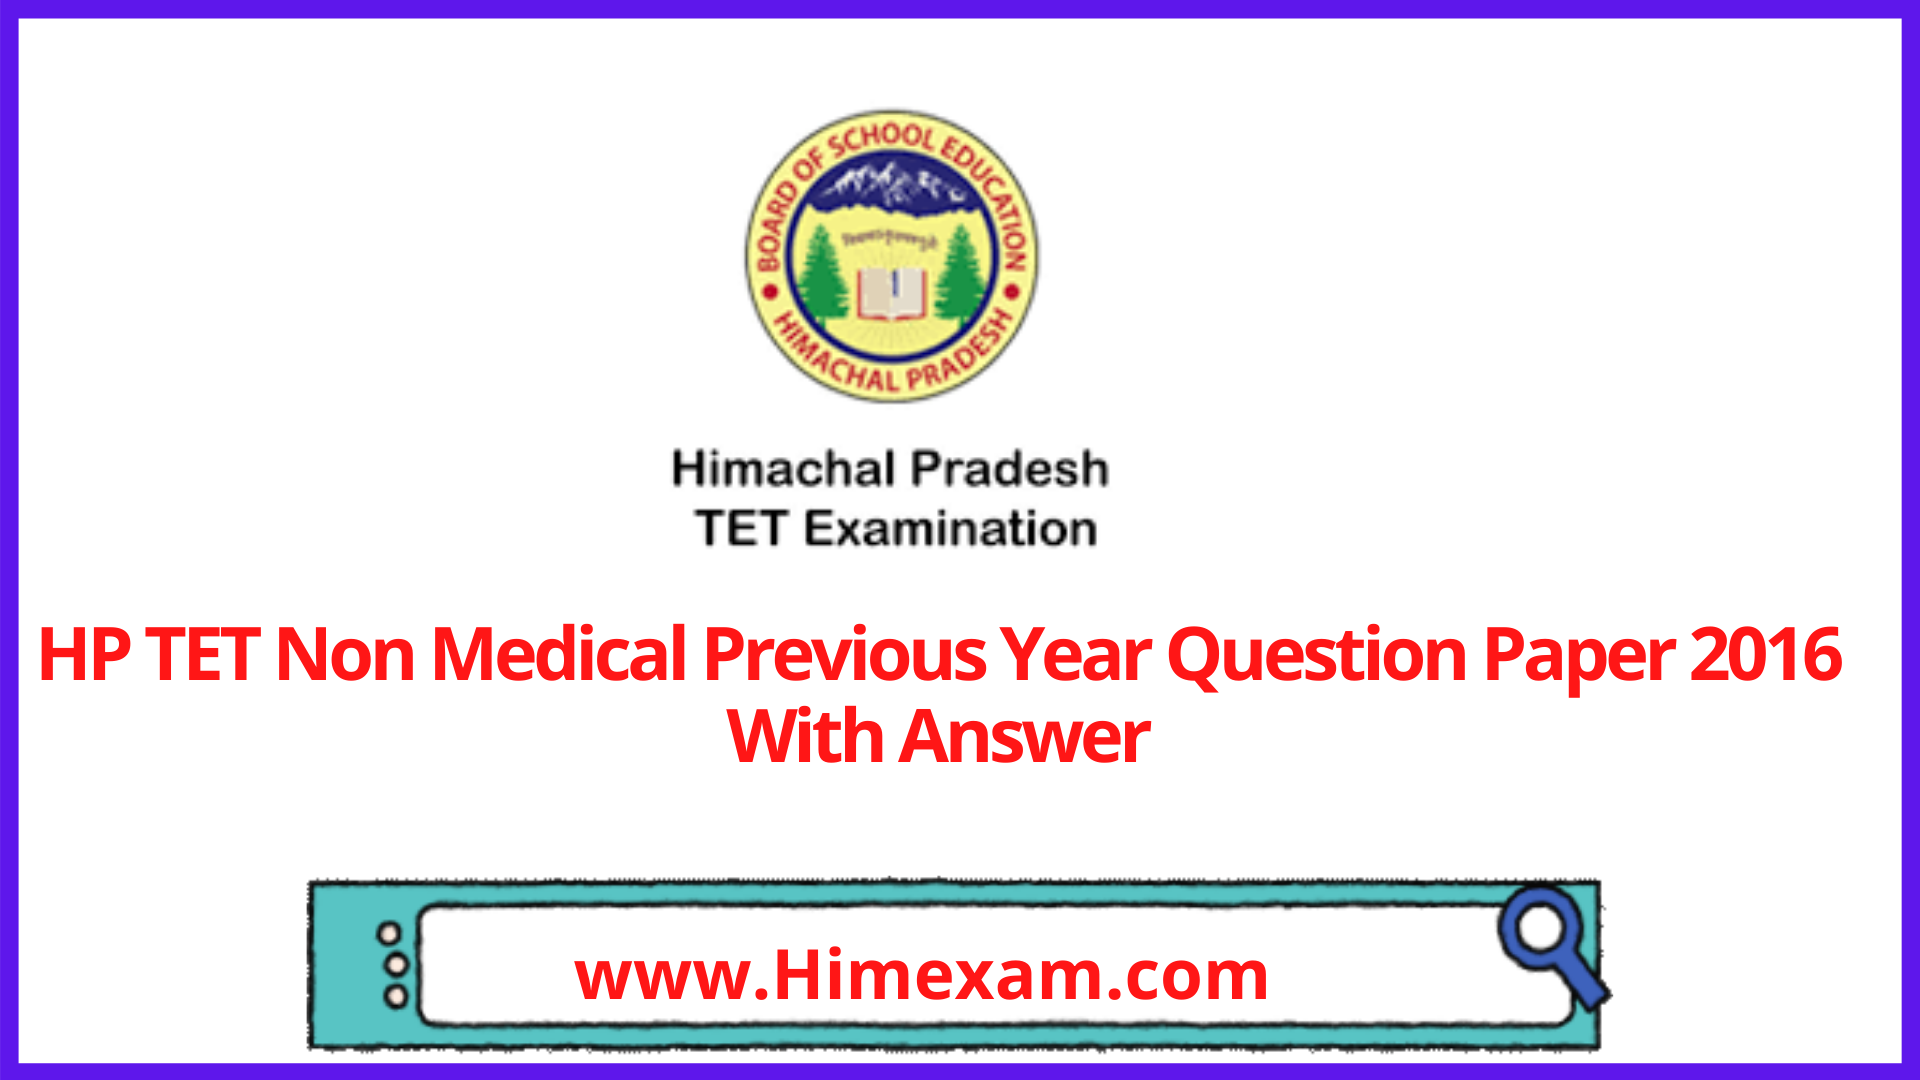 HP TET Non Medical Previous Year Question Paper 2016 With Answer